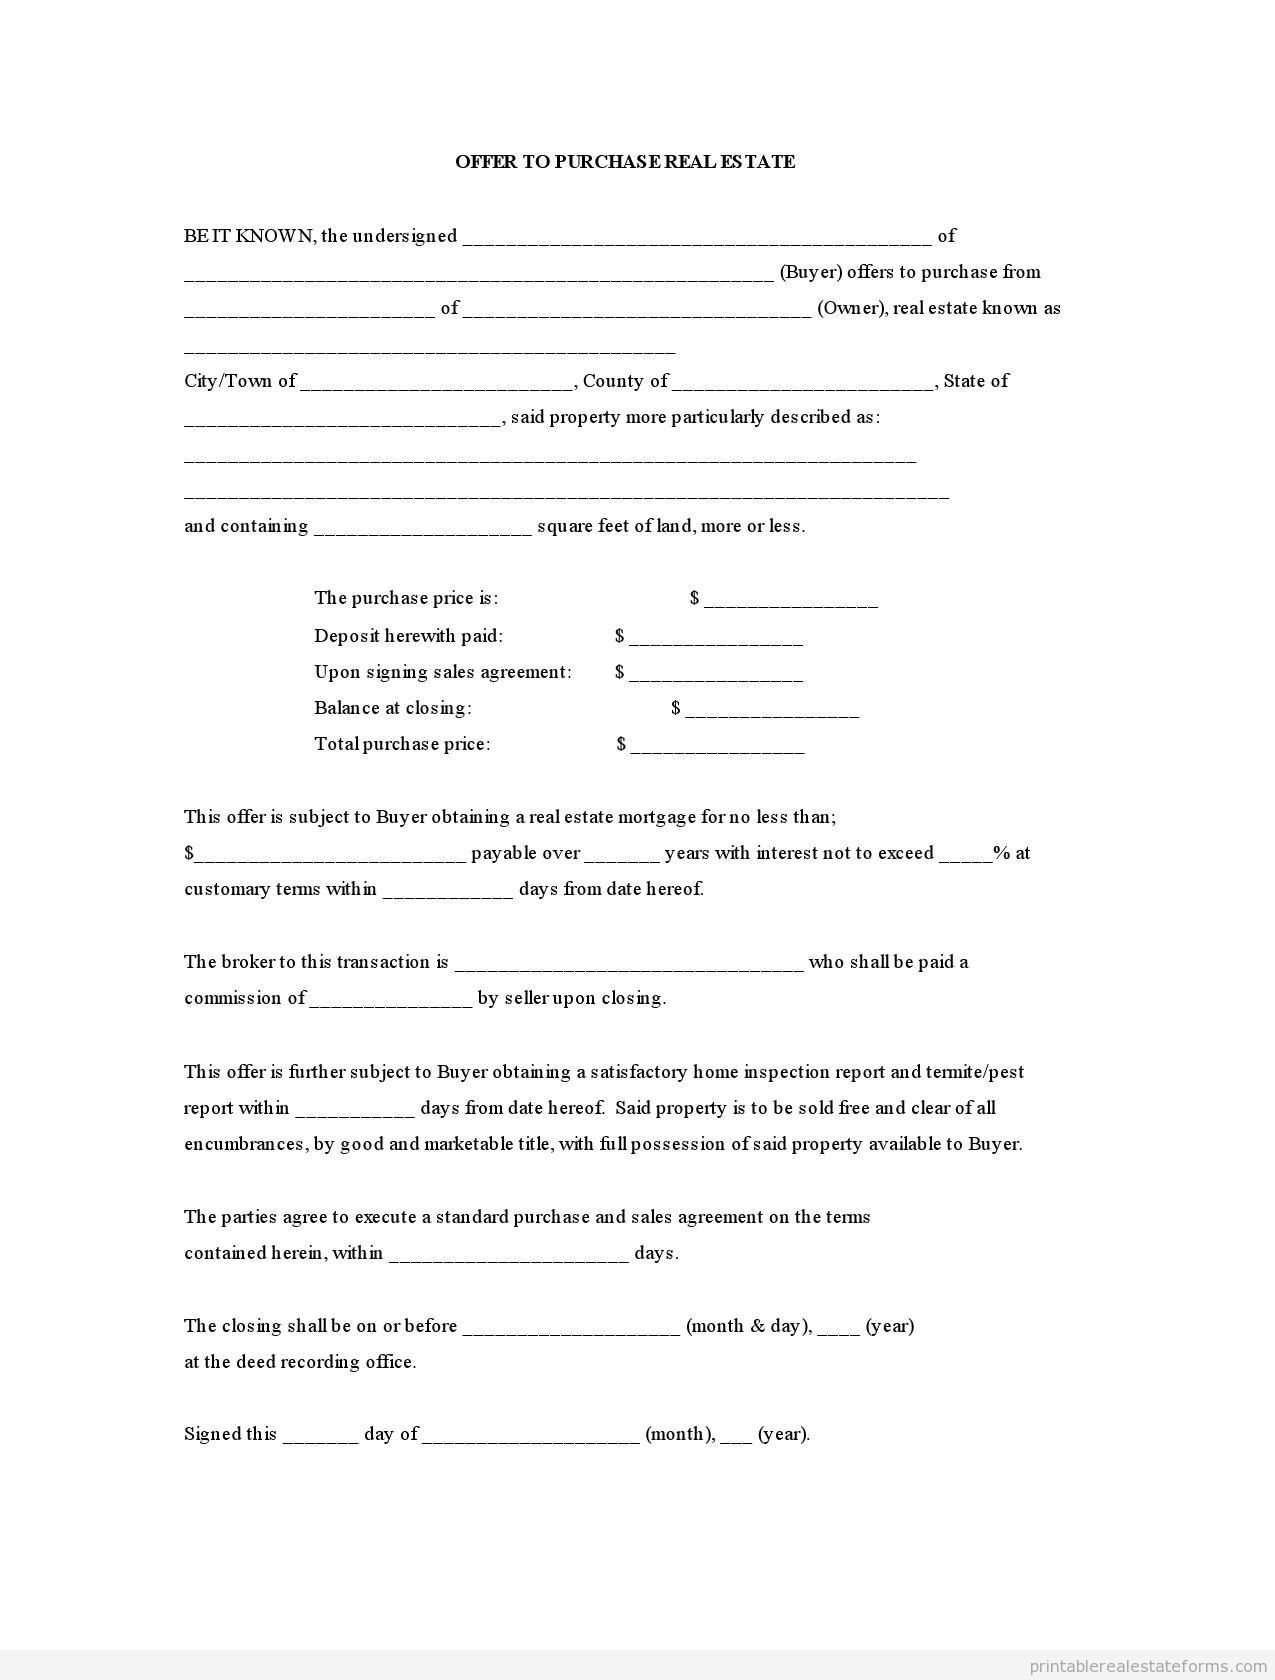 Printable Sample Offer To Purchase Real Estate Form Generic Sample